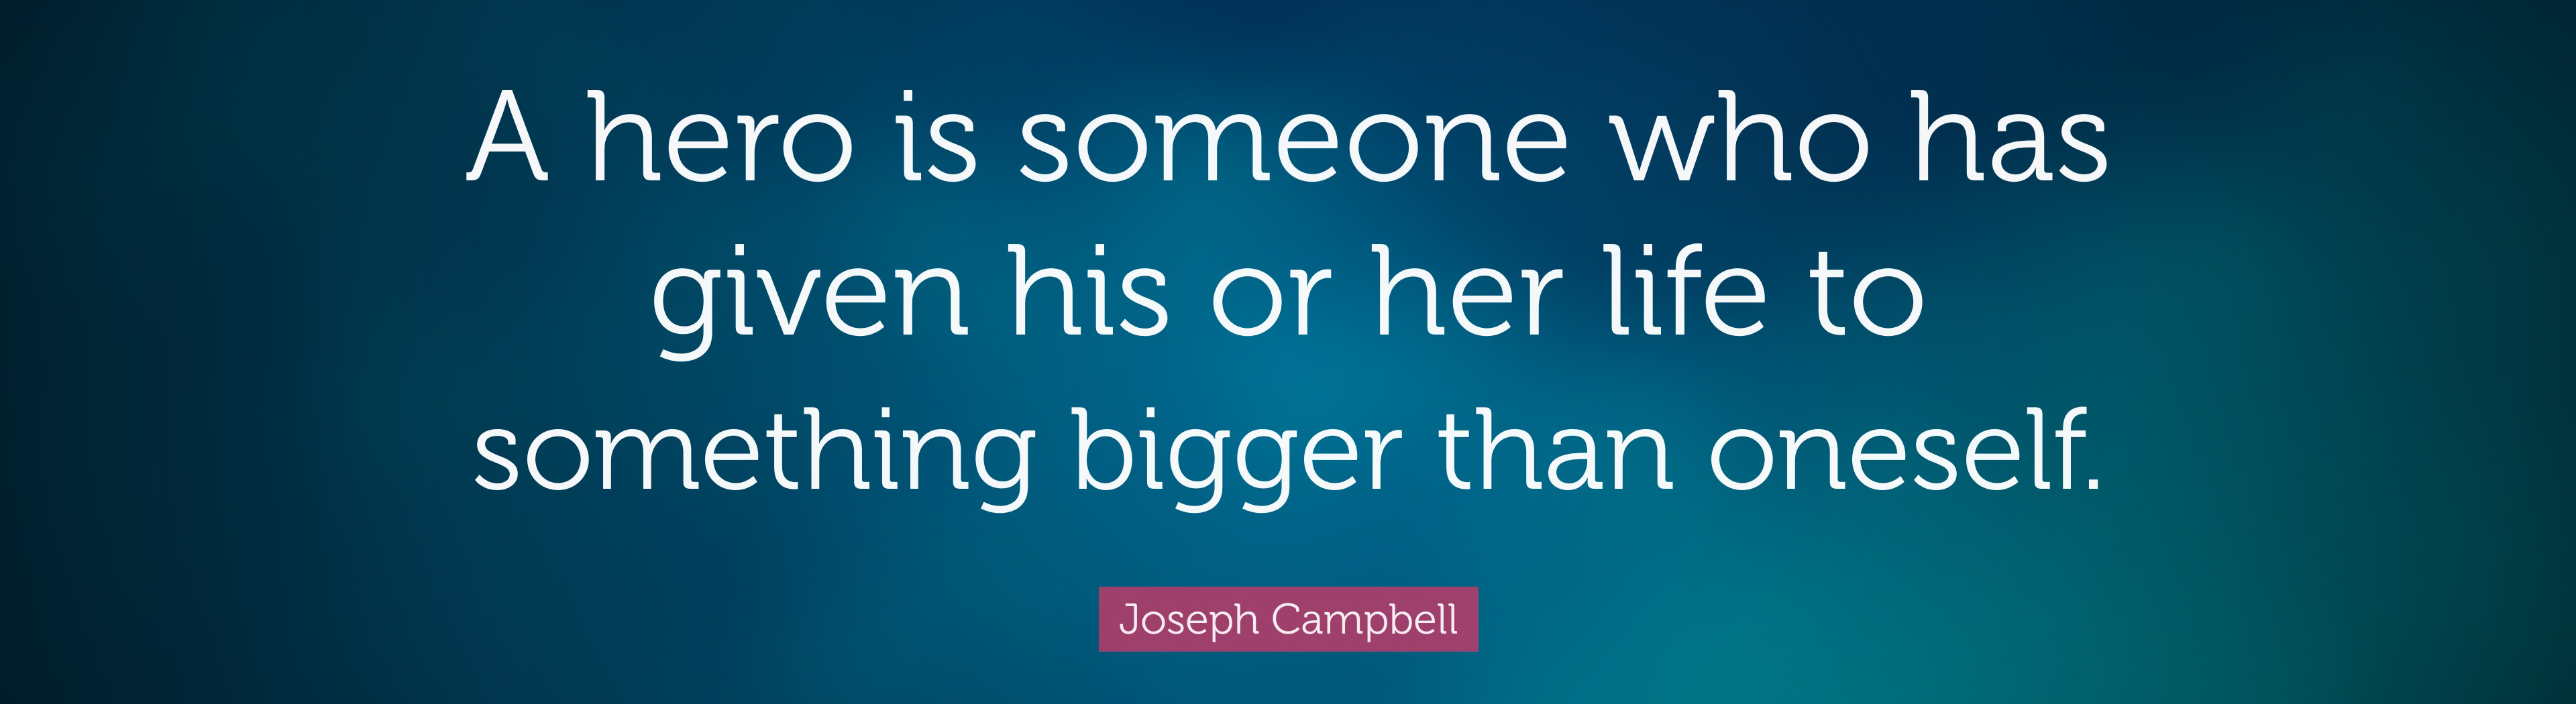 9253-Joseph-Campbell-Quote-A-hero-is-someone-who-has-given-his-or-her